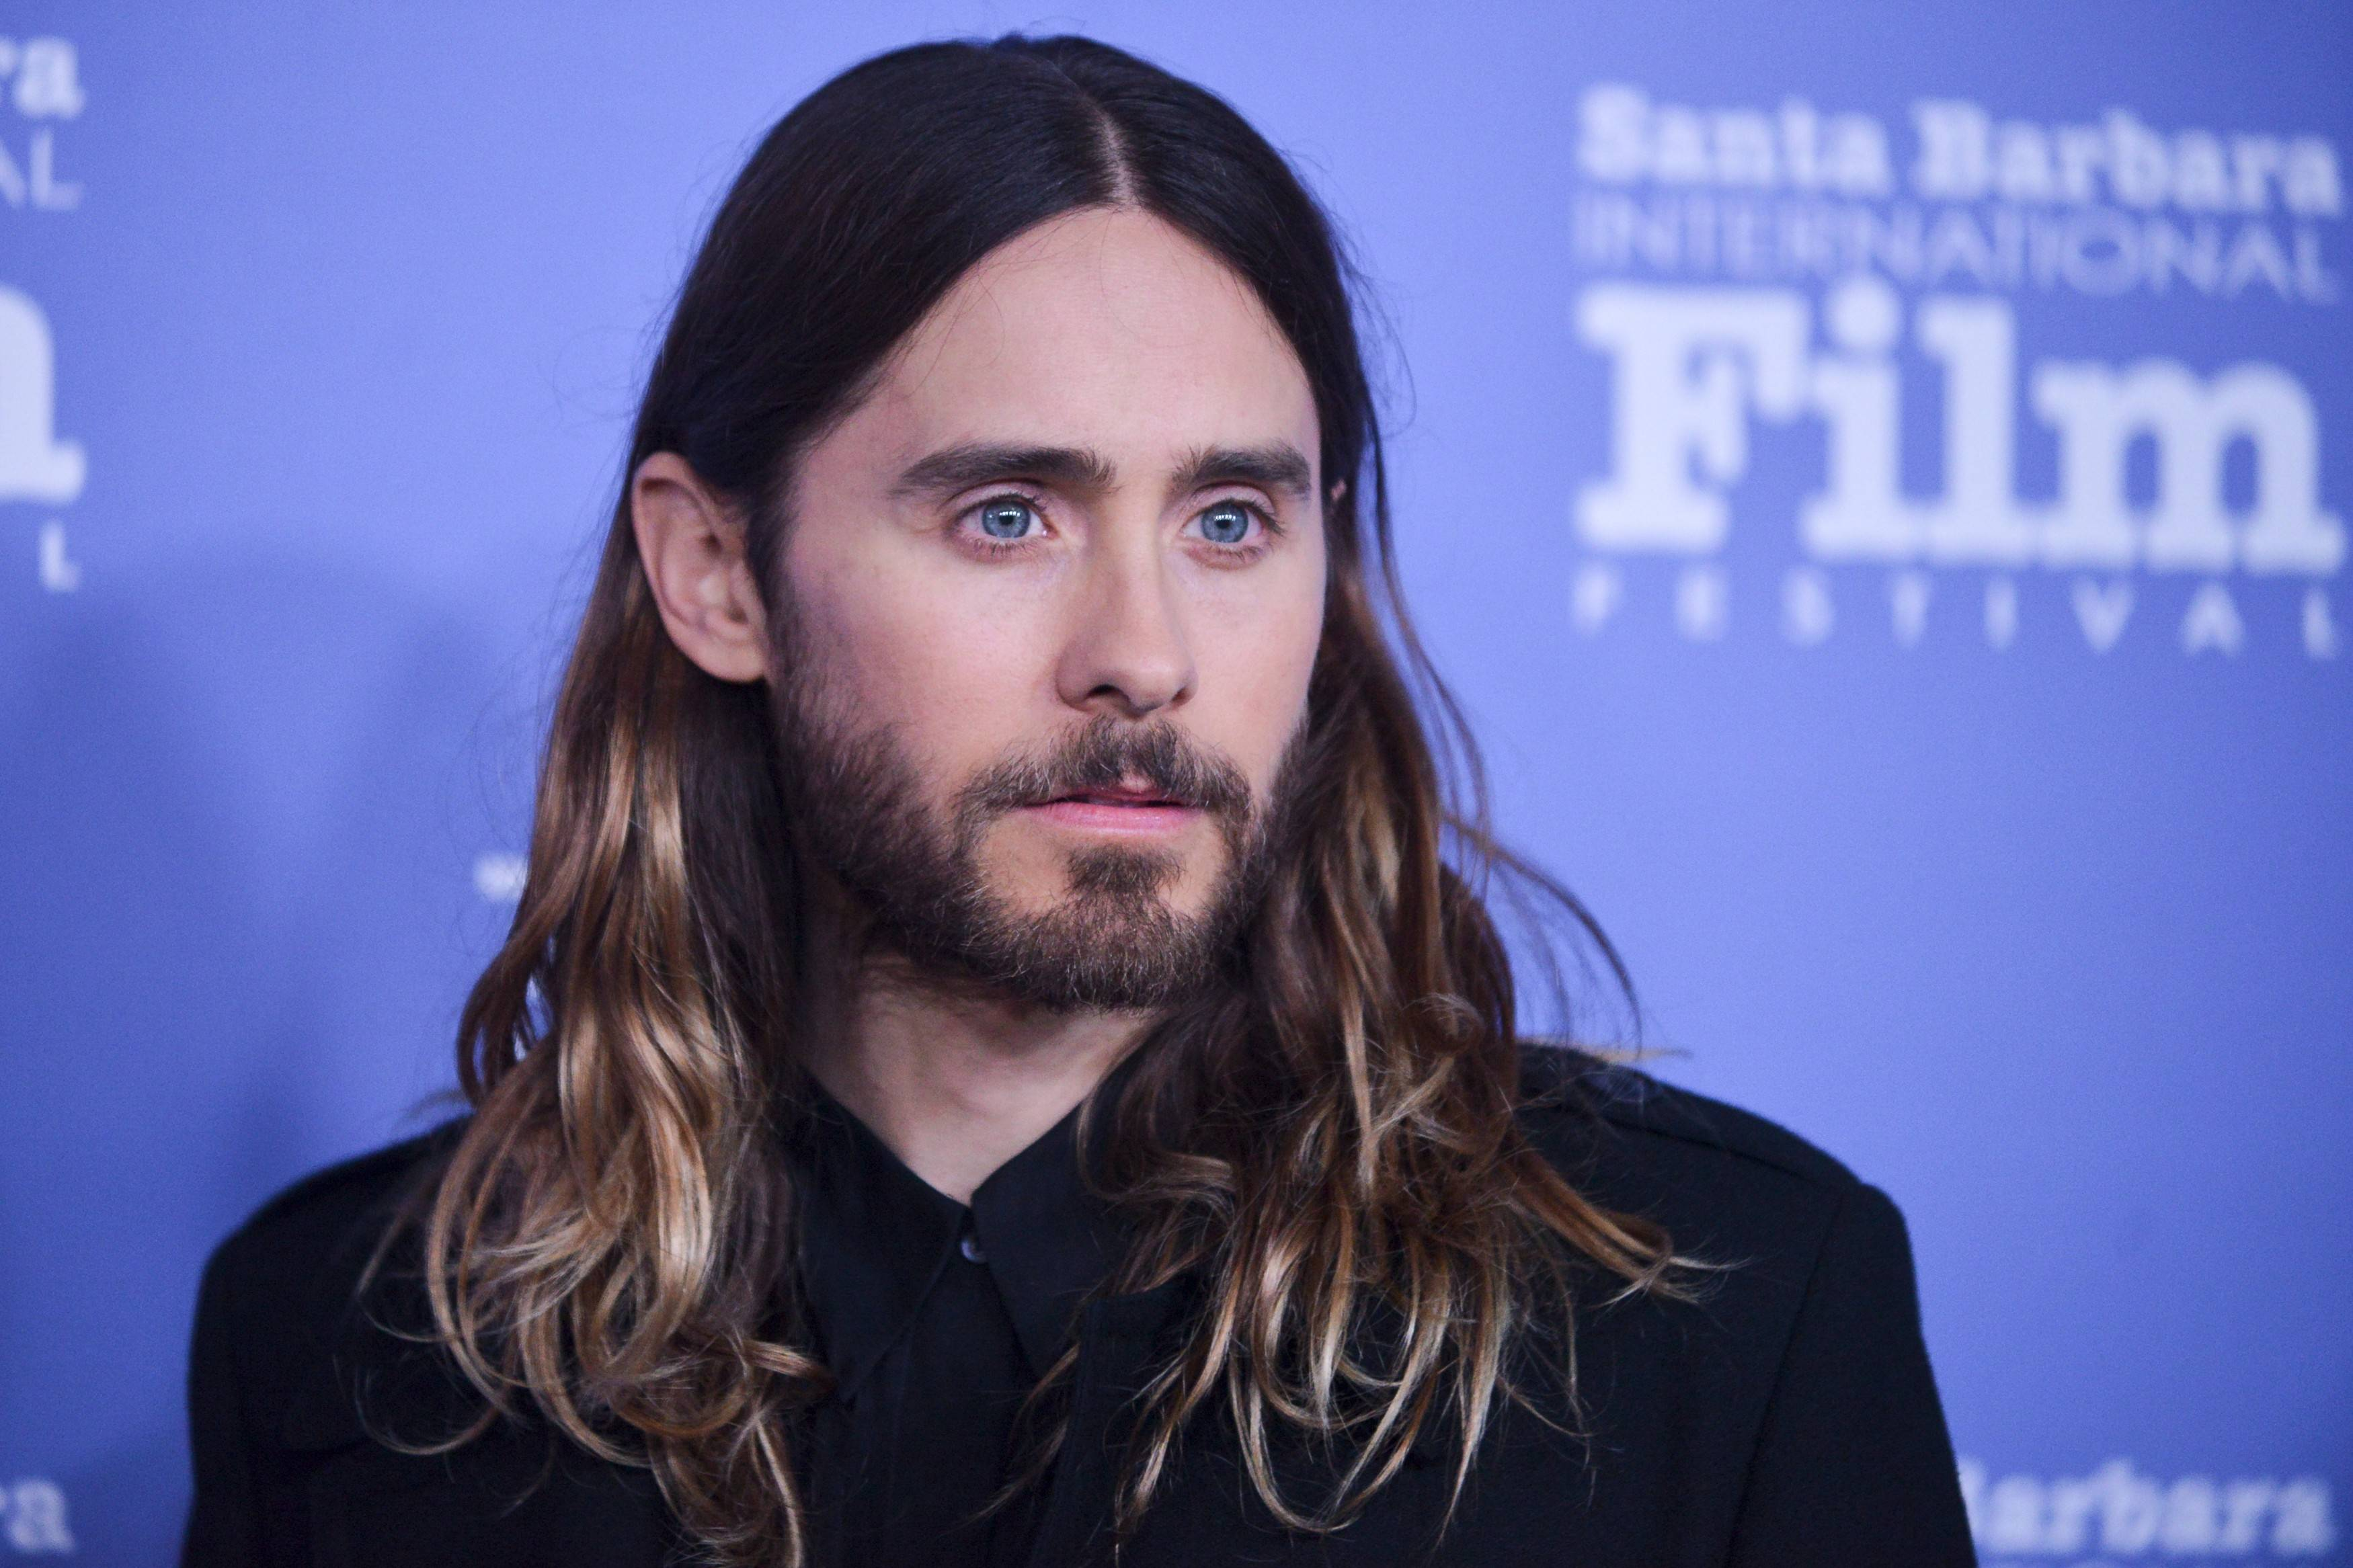 Jared Leto arrives at 2014 Santa Barbara International Film Festival Virtuosos Award ceremony Tuesday, Feb, 4, 2014 in Santa Barbara.